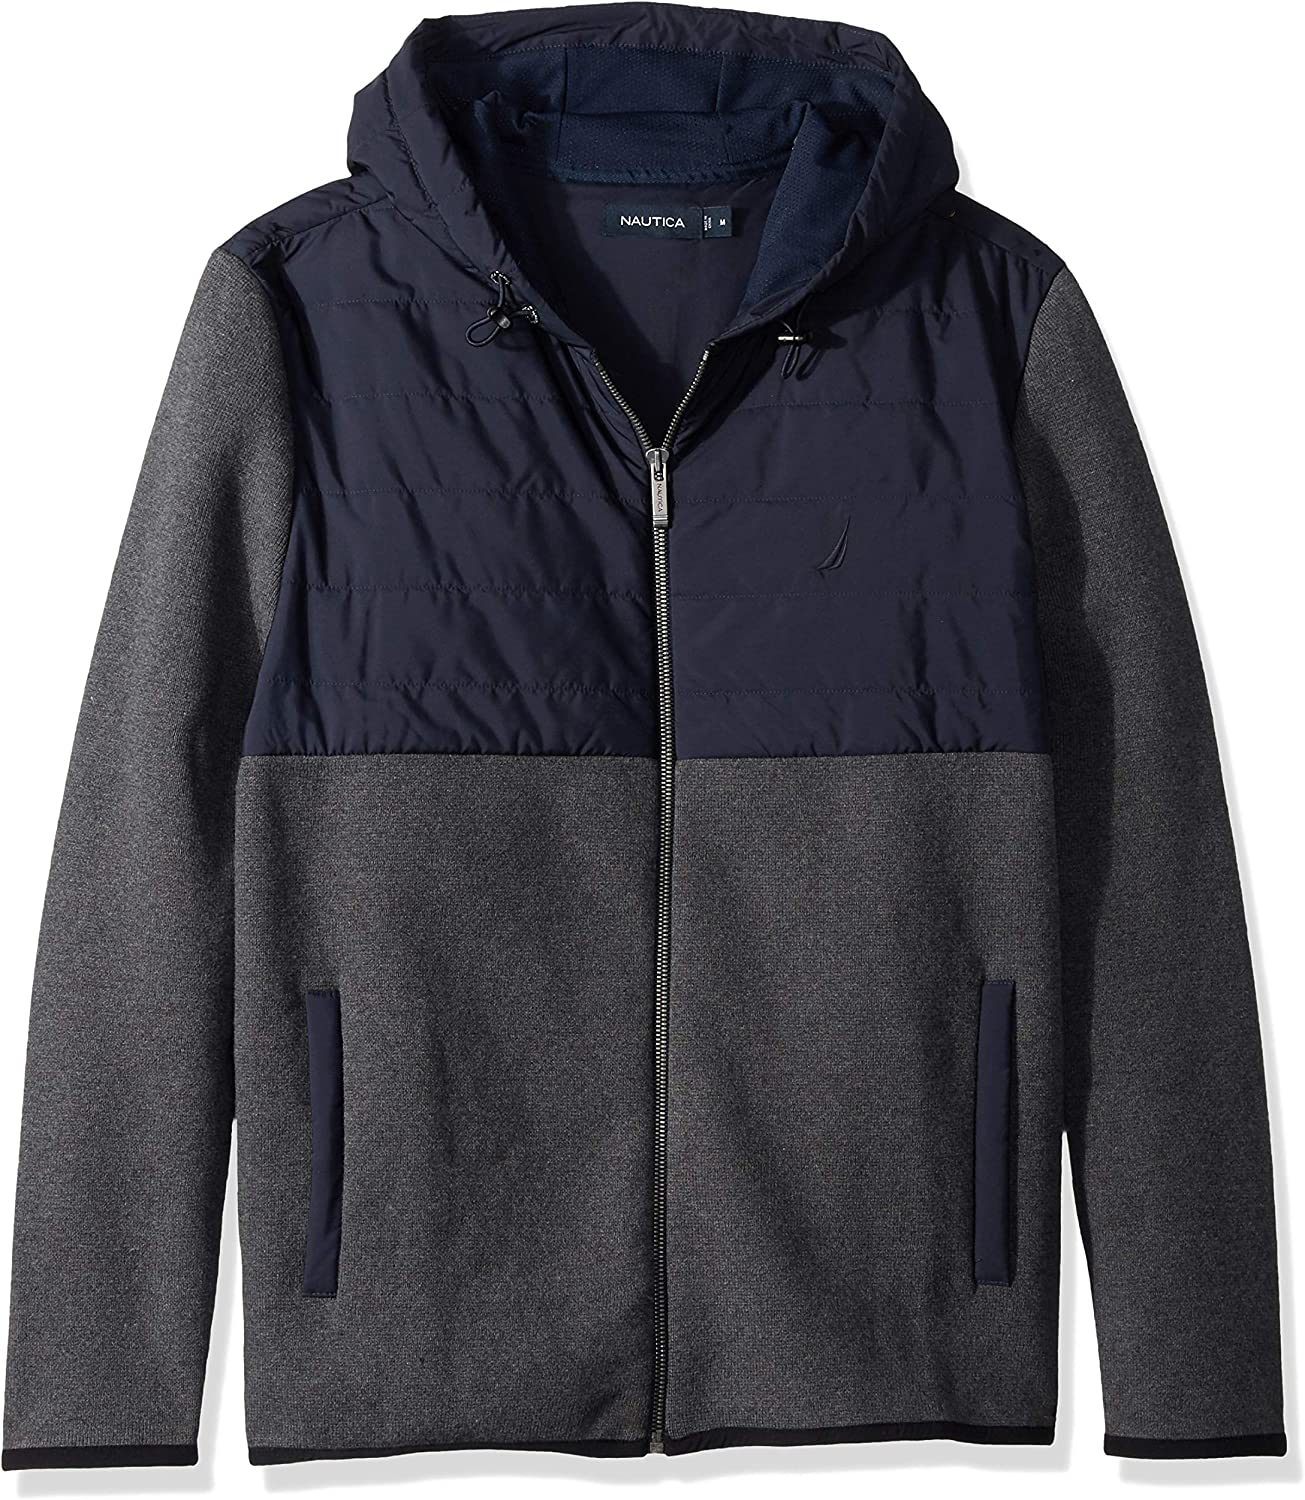 Nautica Men's Long Sleeve Mix Hoodie Sweater Media All stores Max 44% OFF are sold